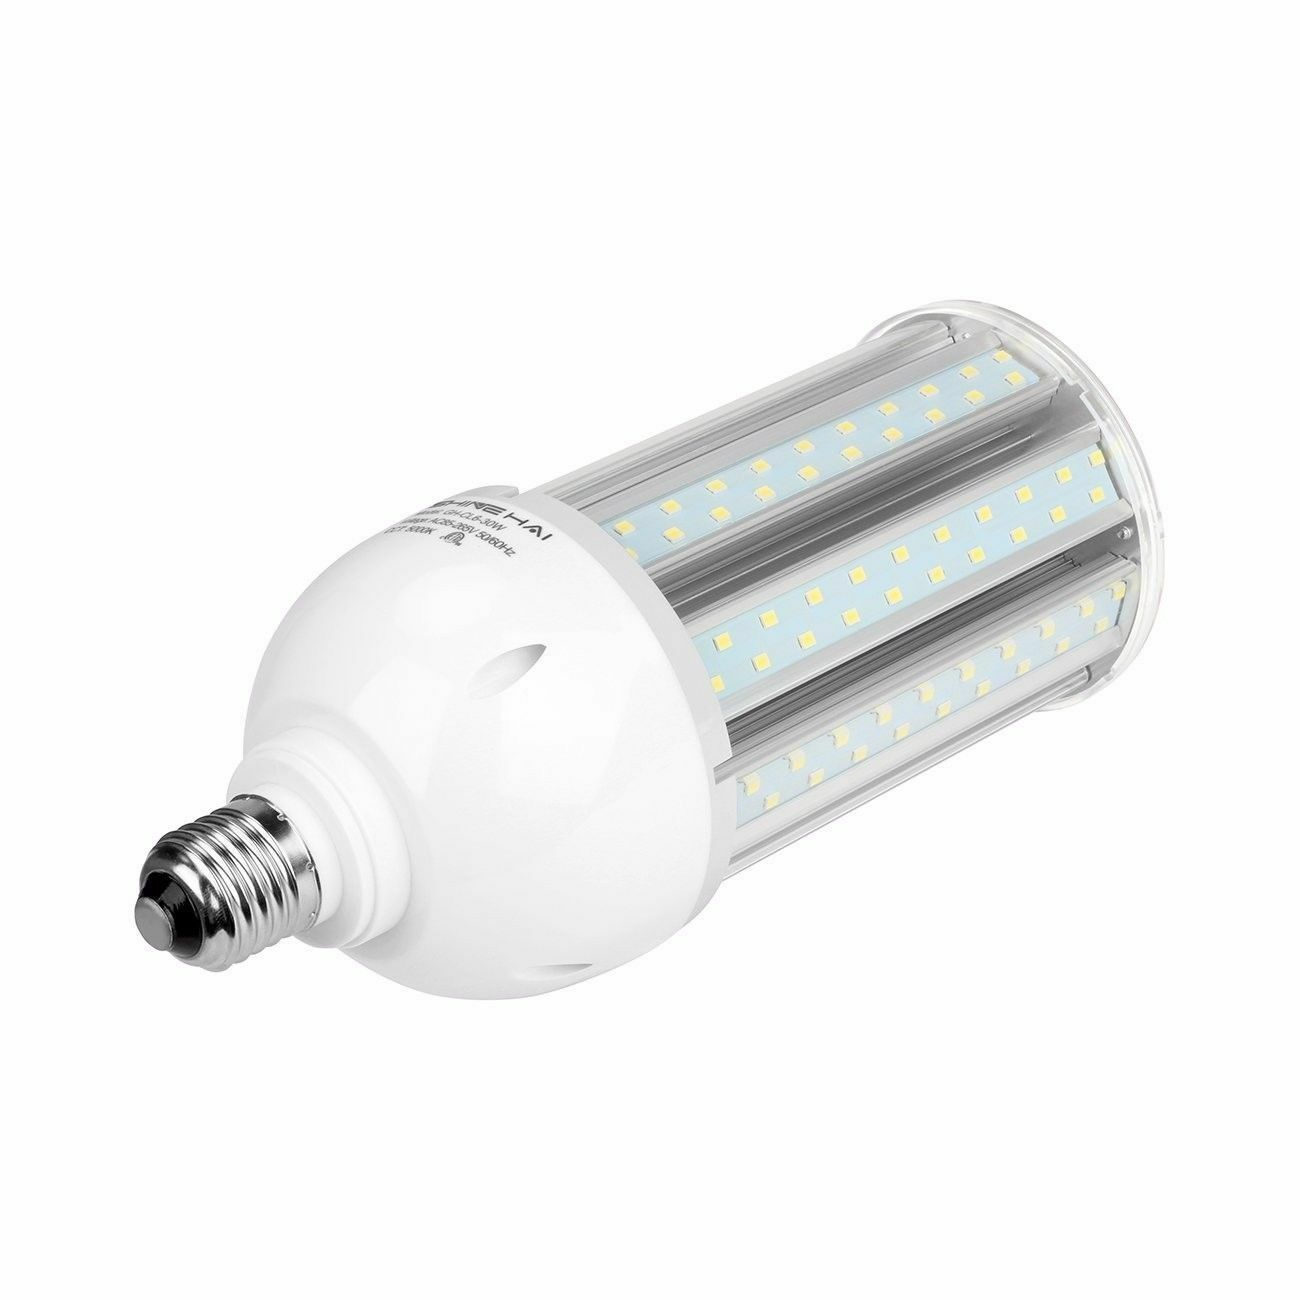 LED CORN BULB 35W 300W Equivalent  3500Lm E26 Base 5000K SHINEHAI  Bright Light